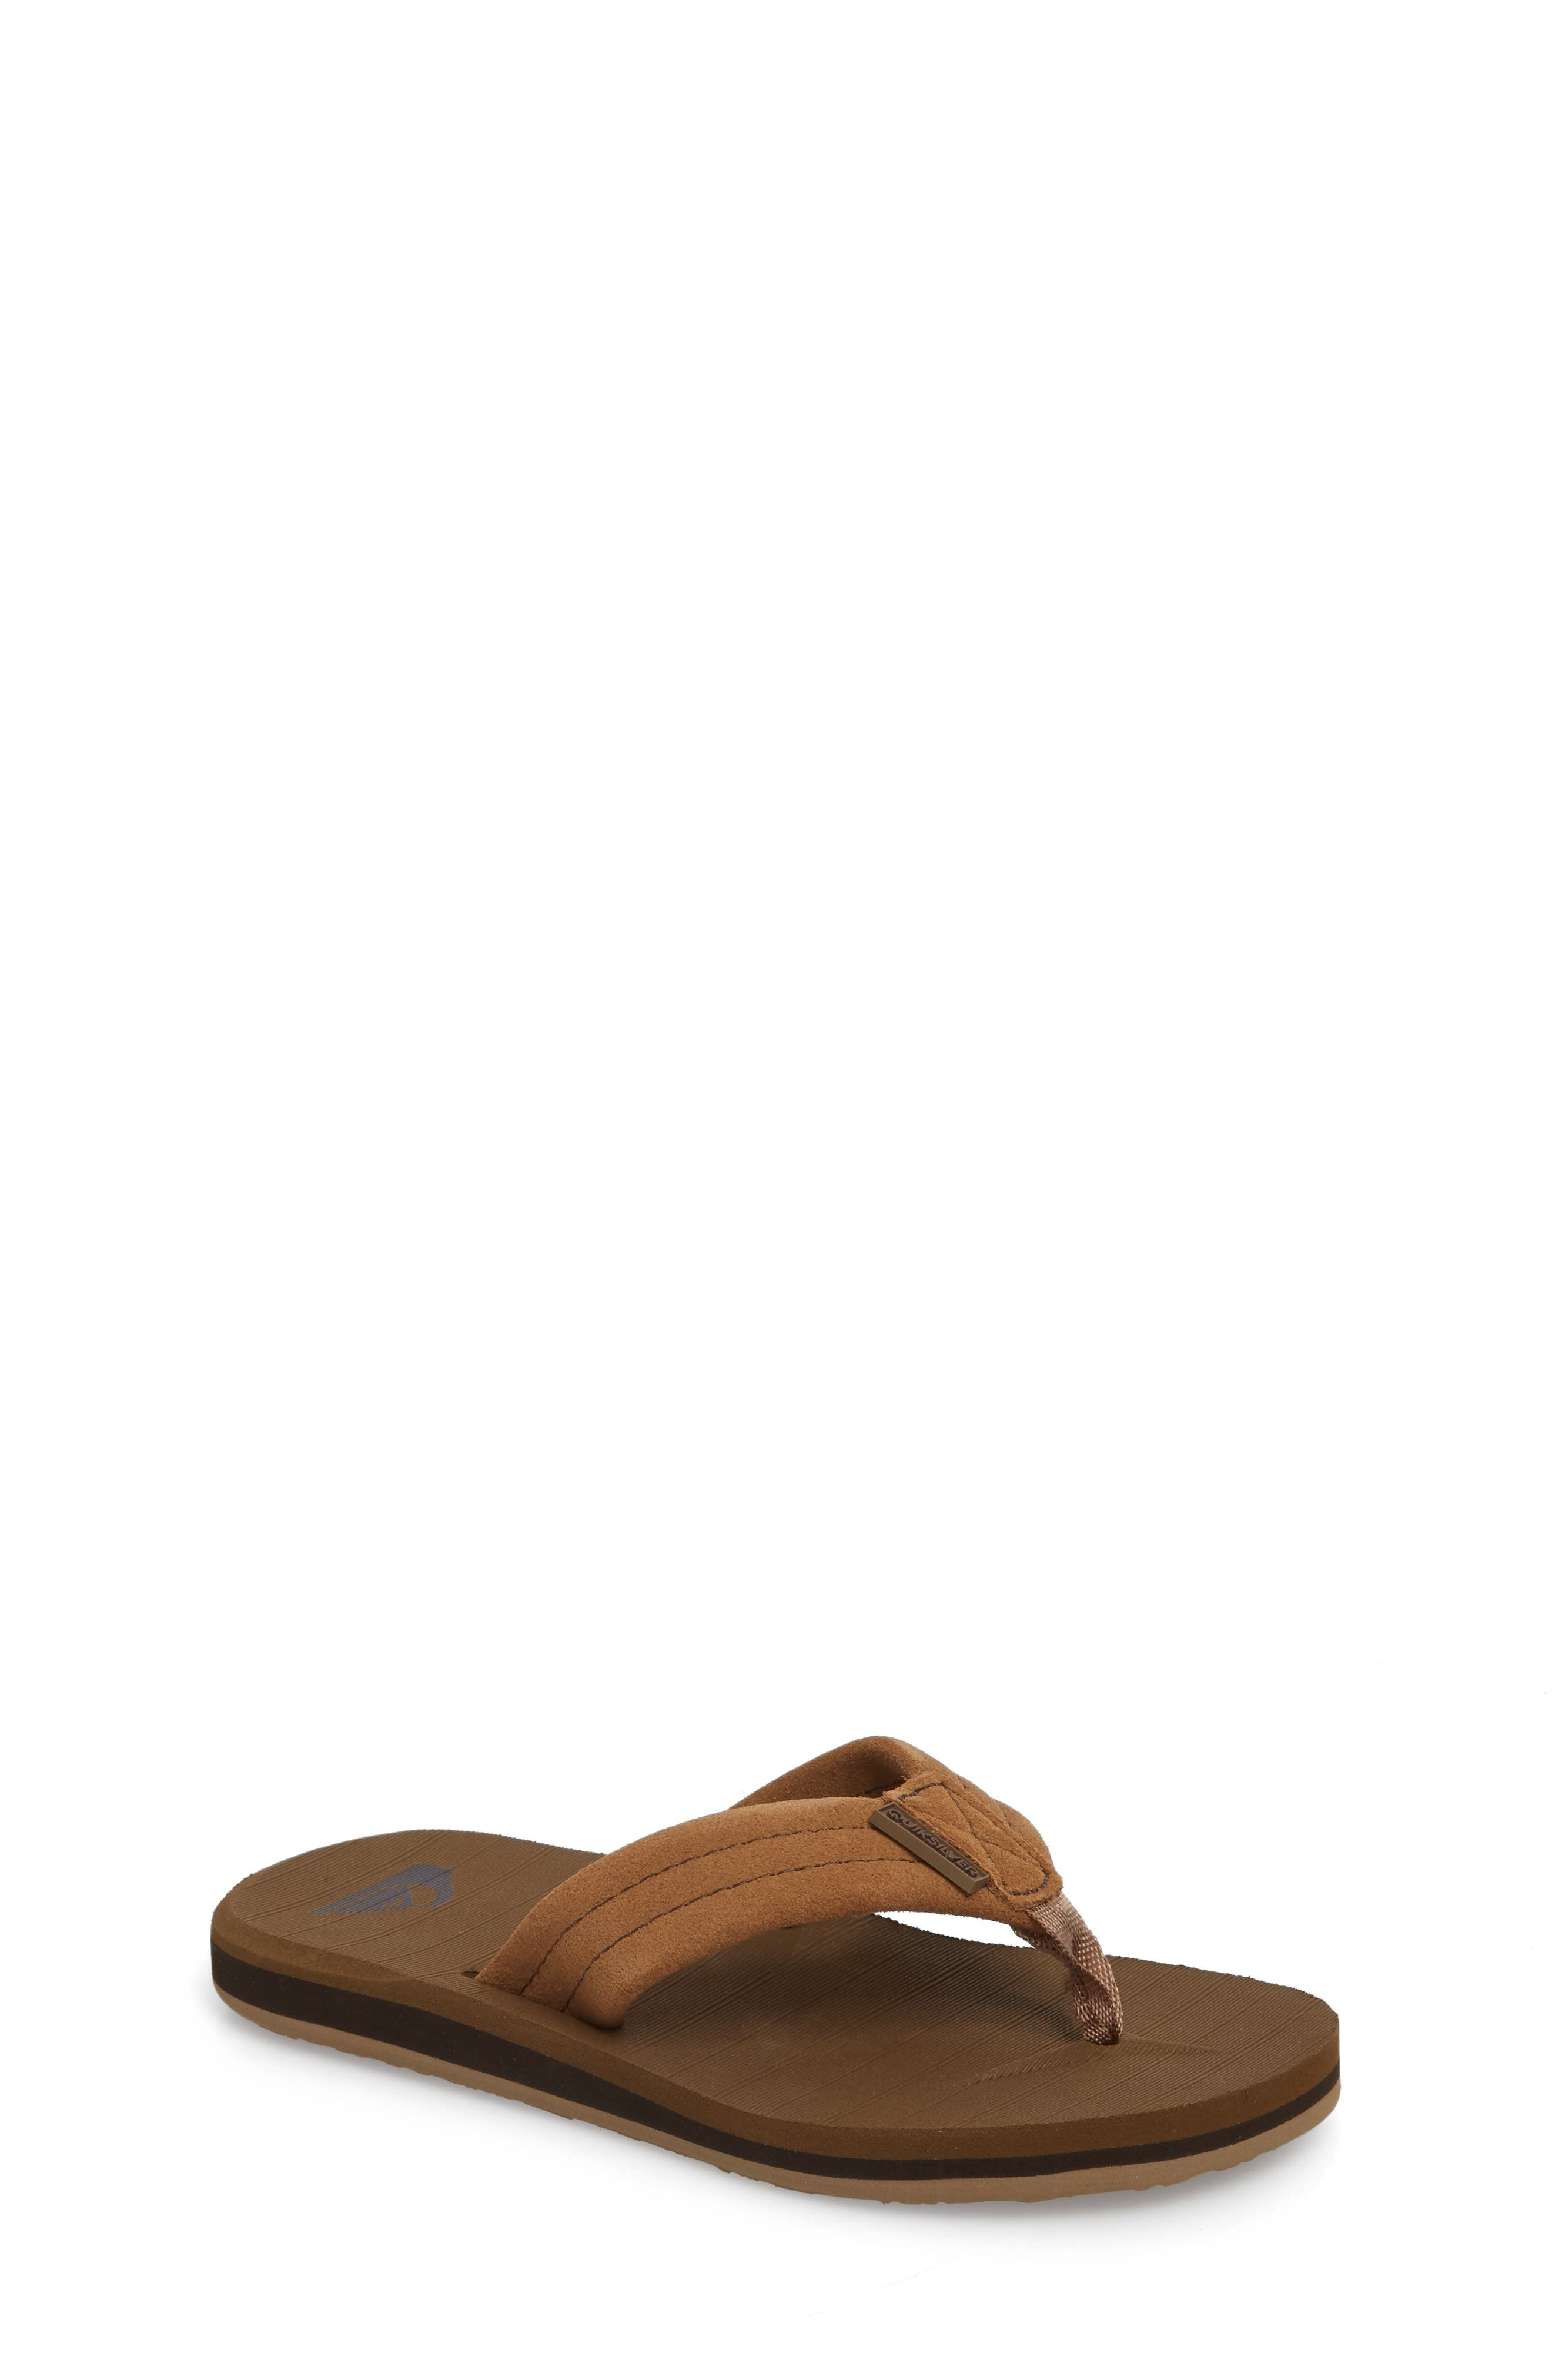 Carver Flip Flop,                             Main thumbnail 1, color,                             TAN